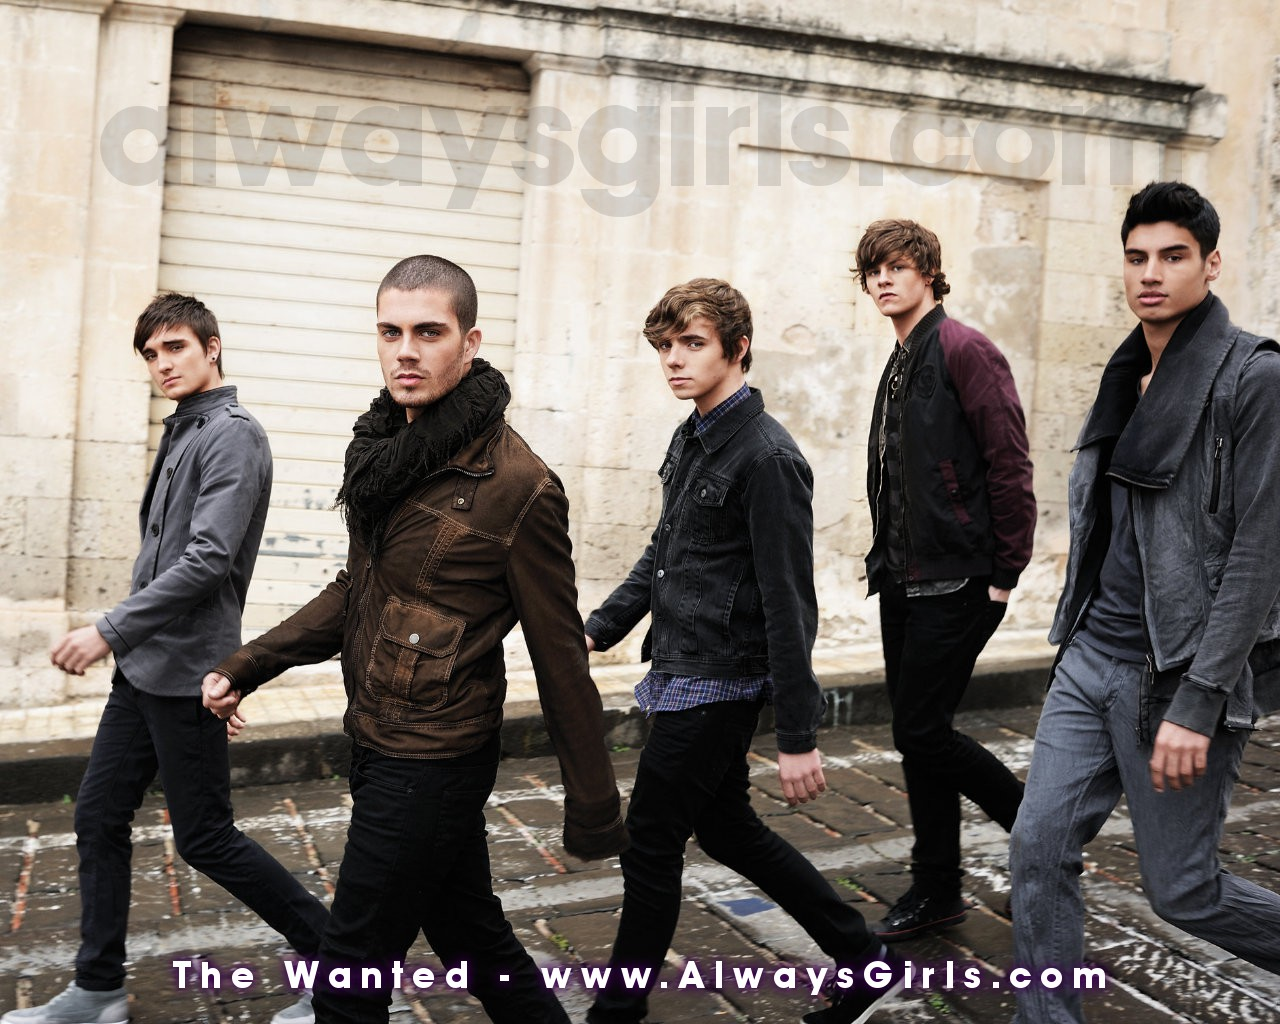 The Wanted 2014 Wallpaper The Wanted - The Wante...